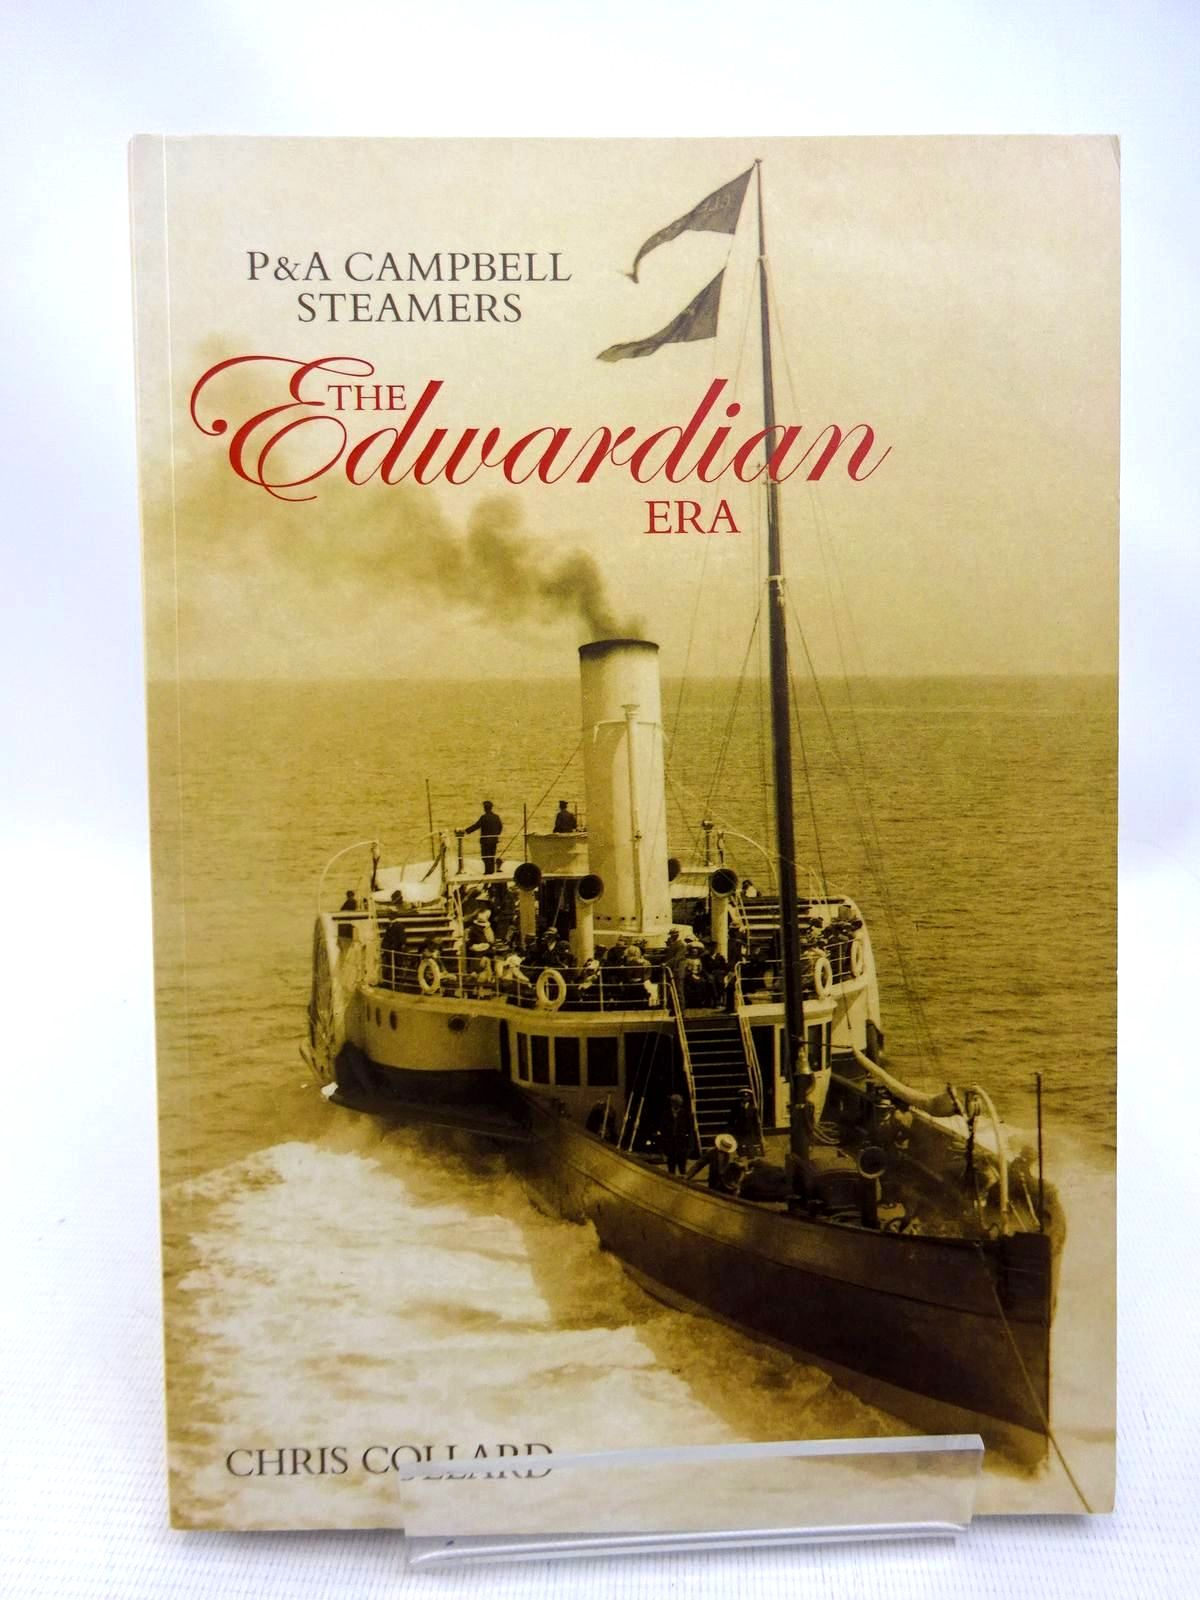 Photo of P&A CAMPBELL STEAMERS THE EDWARDIAN ERA written by Collard, Chris published by Tempus (STOCK CODE: 1816730)  for sale by Stella & Rose's Books